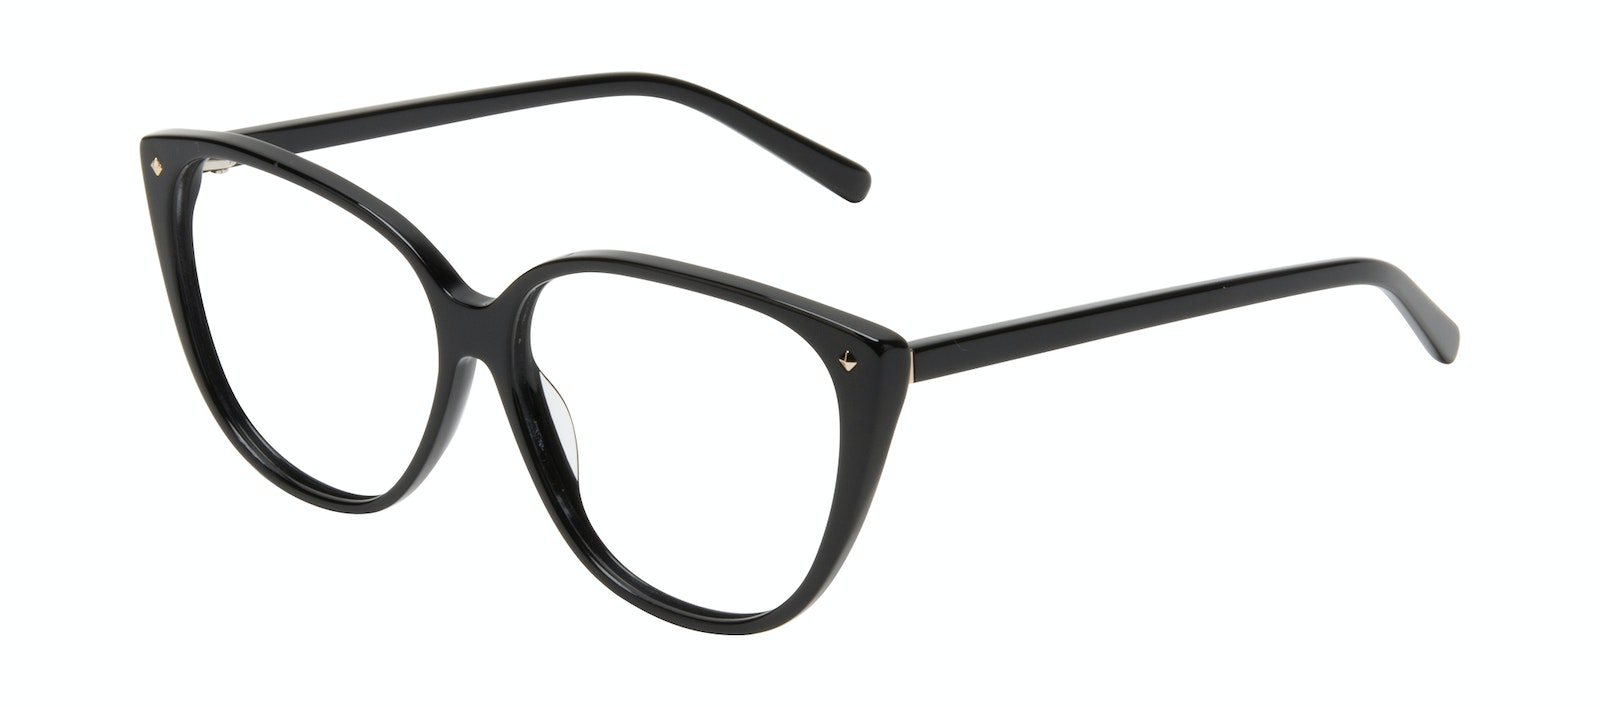 Affordable Fashion Glasses Cat Eye Eyeglasses Women Icone Onyx Tilt